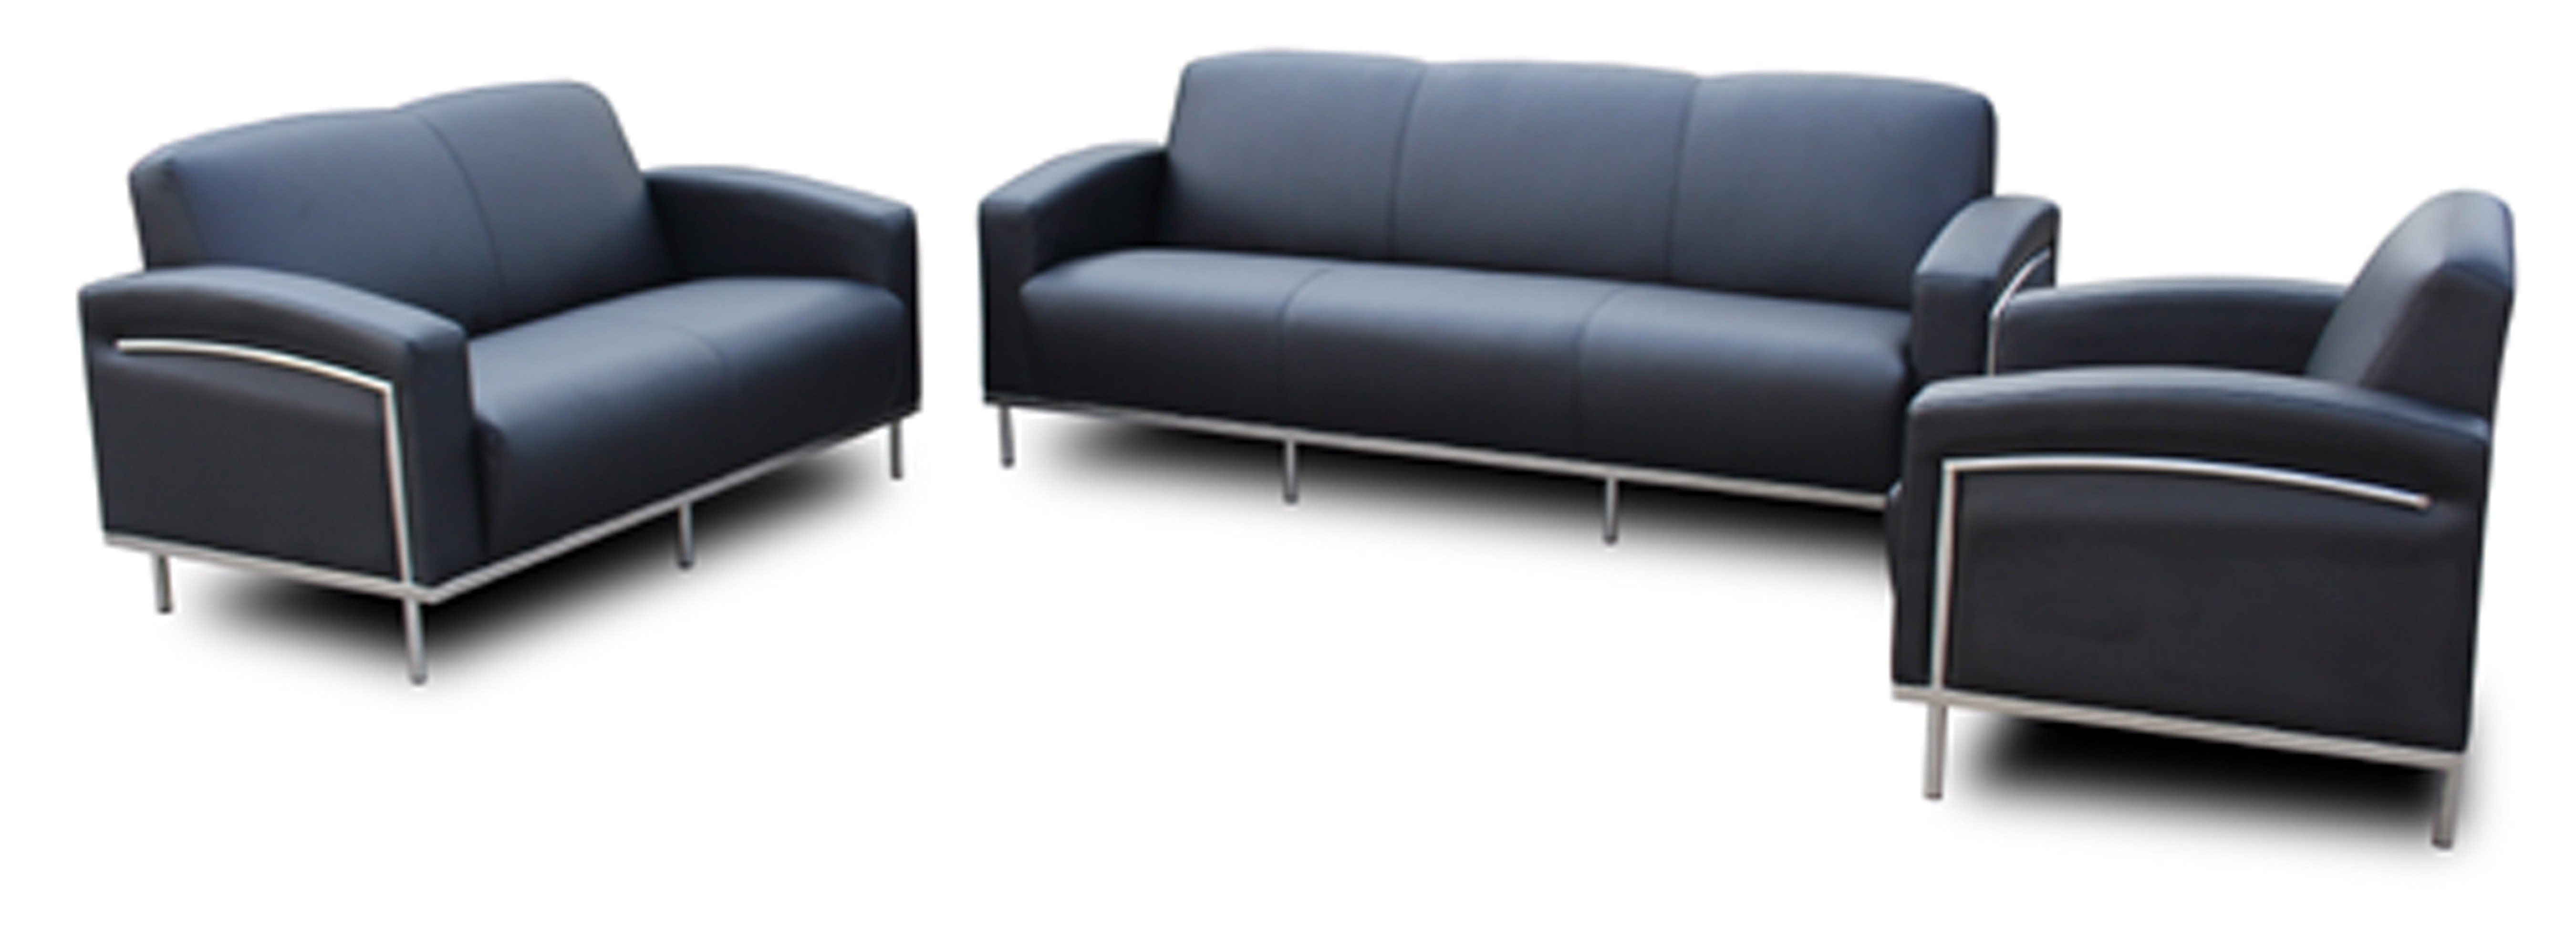 top traditional sectional sofas model-Modern Traditional Sectional sofas Image